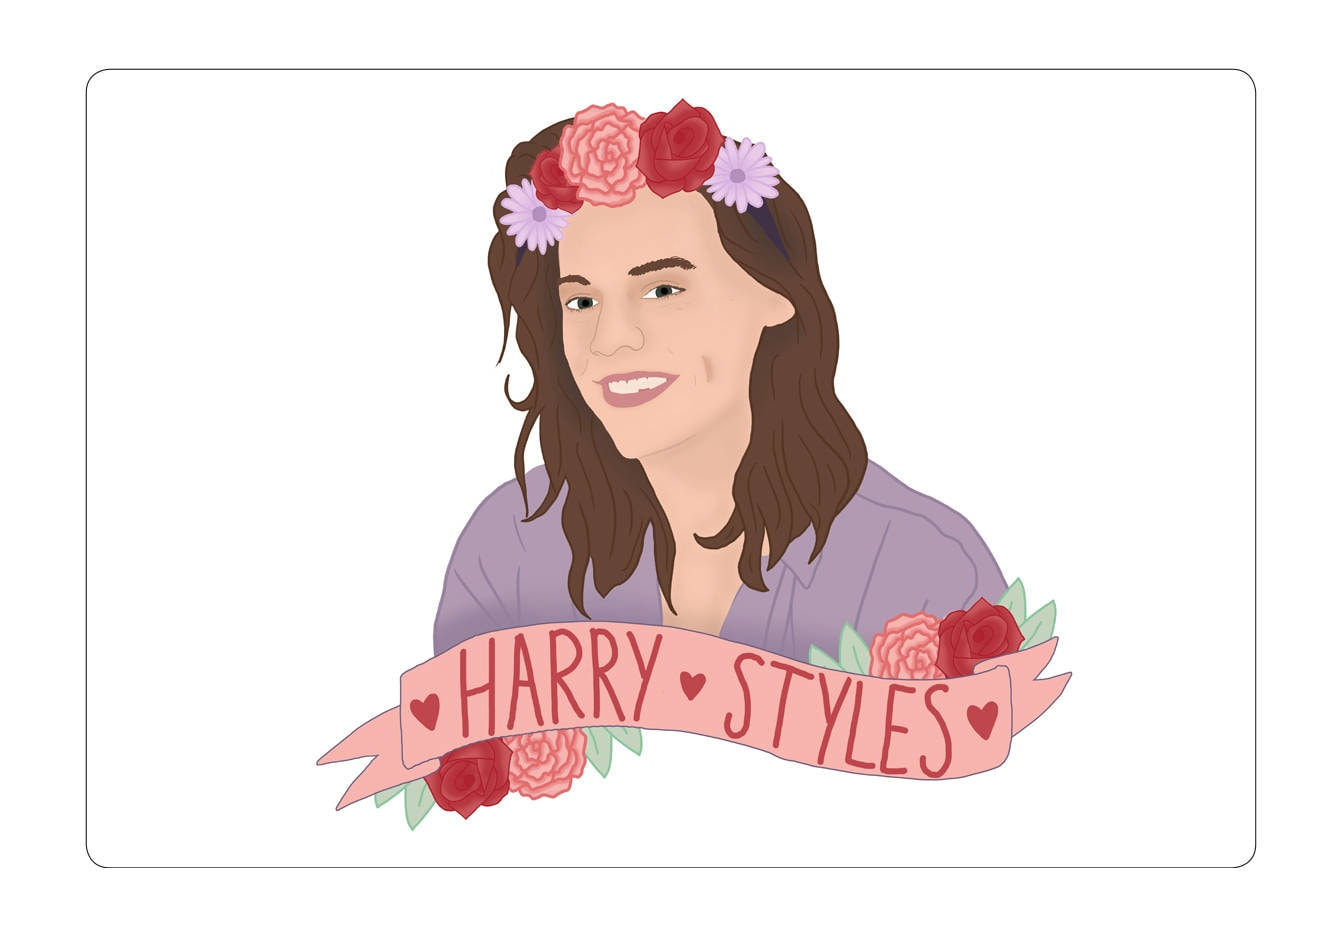 Flower crown sticker one direction harry styles stationery art zoom izmirmasajfo Image collections